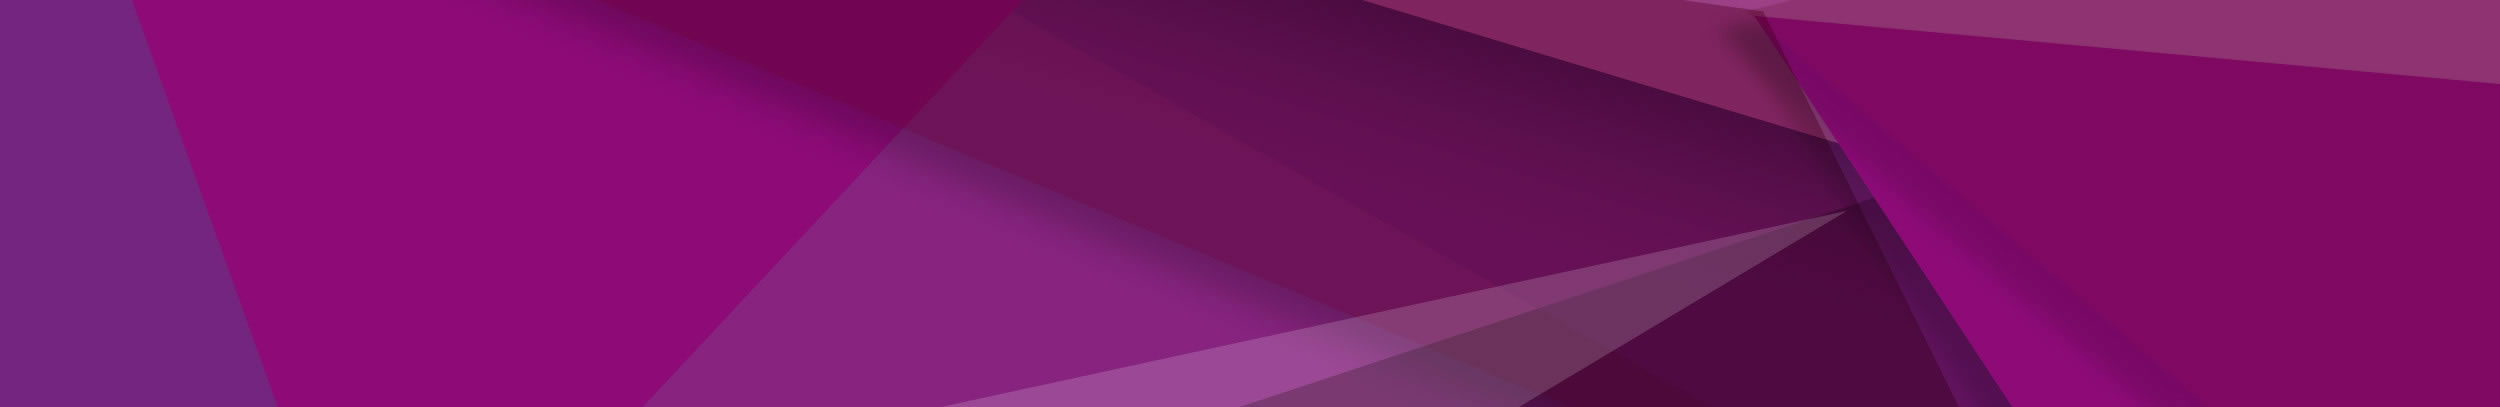 geometric background images in purple